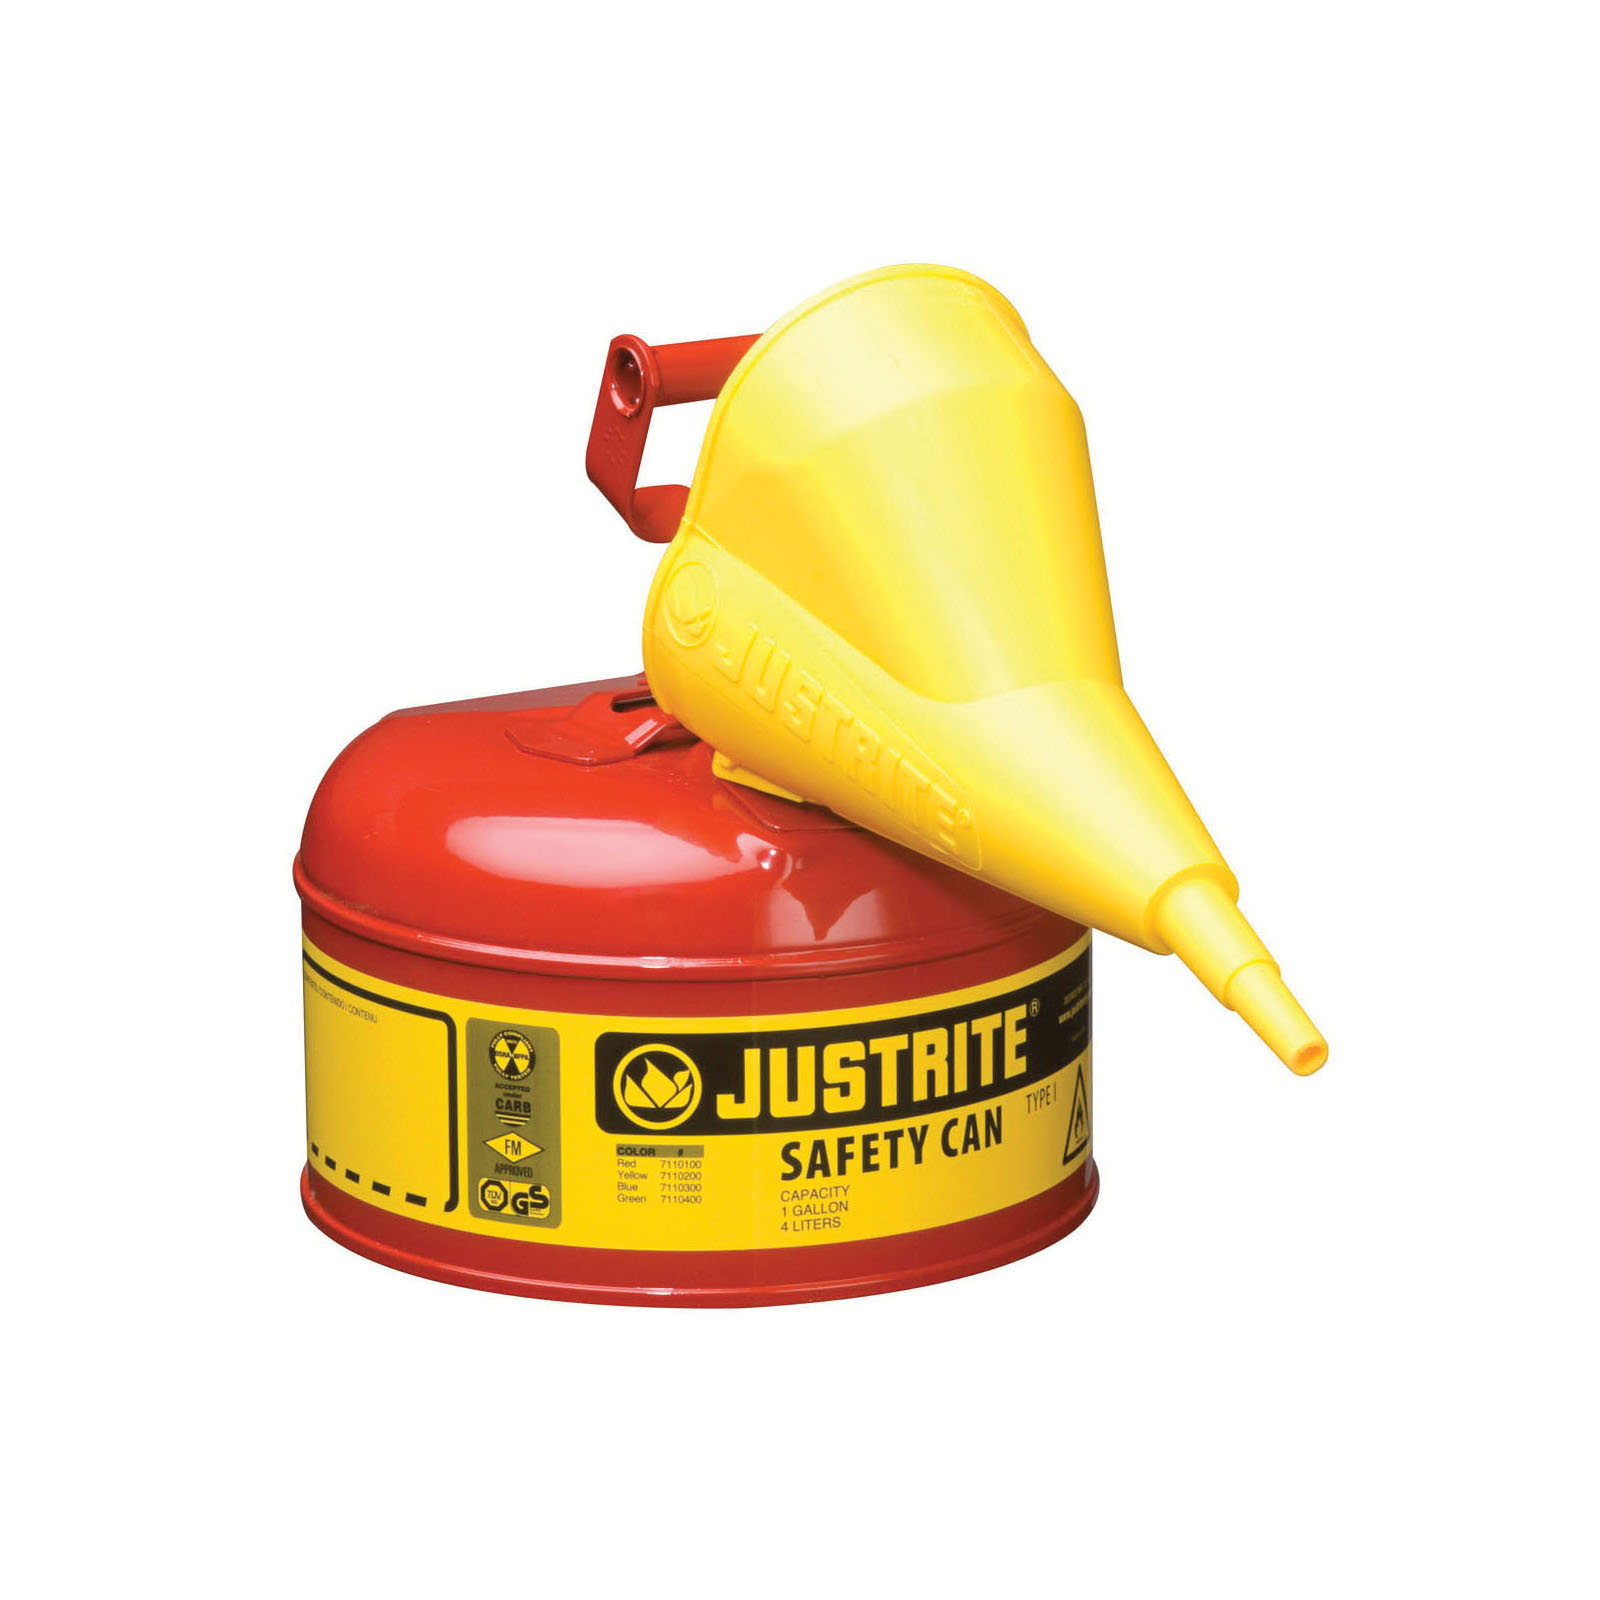 Justrite® 7110110 Type I Safety Can With Swinging Handle, Stainless Steel Flame Arrester and 11202Y 1/2 in OD x 11-1/4 in H Polypropylene Funnel, 1 gal Capacity, 9-1/2 in Dia x 11 in H, Steel, Red